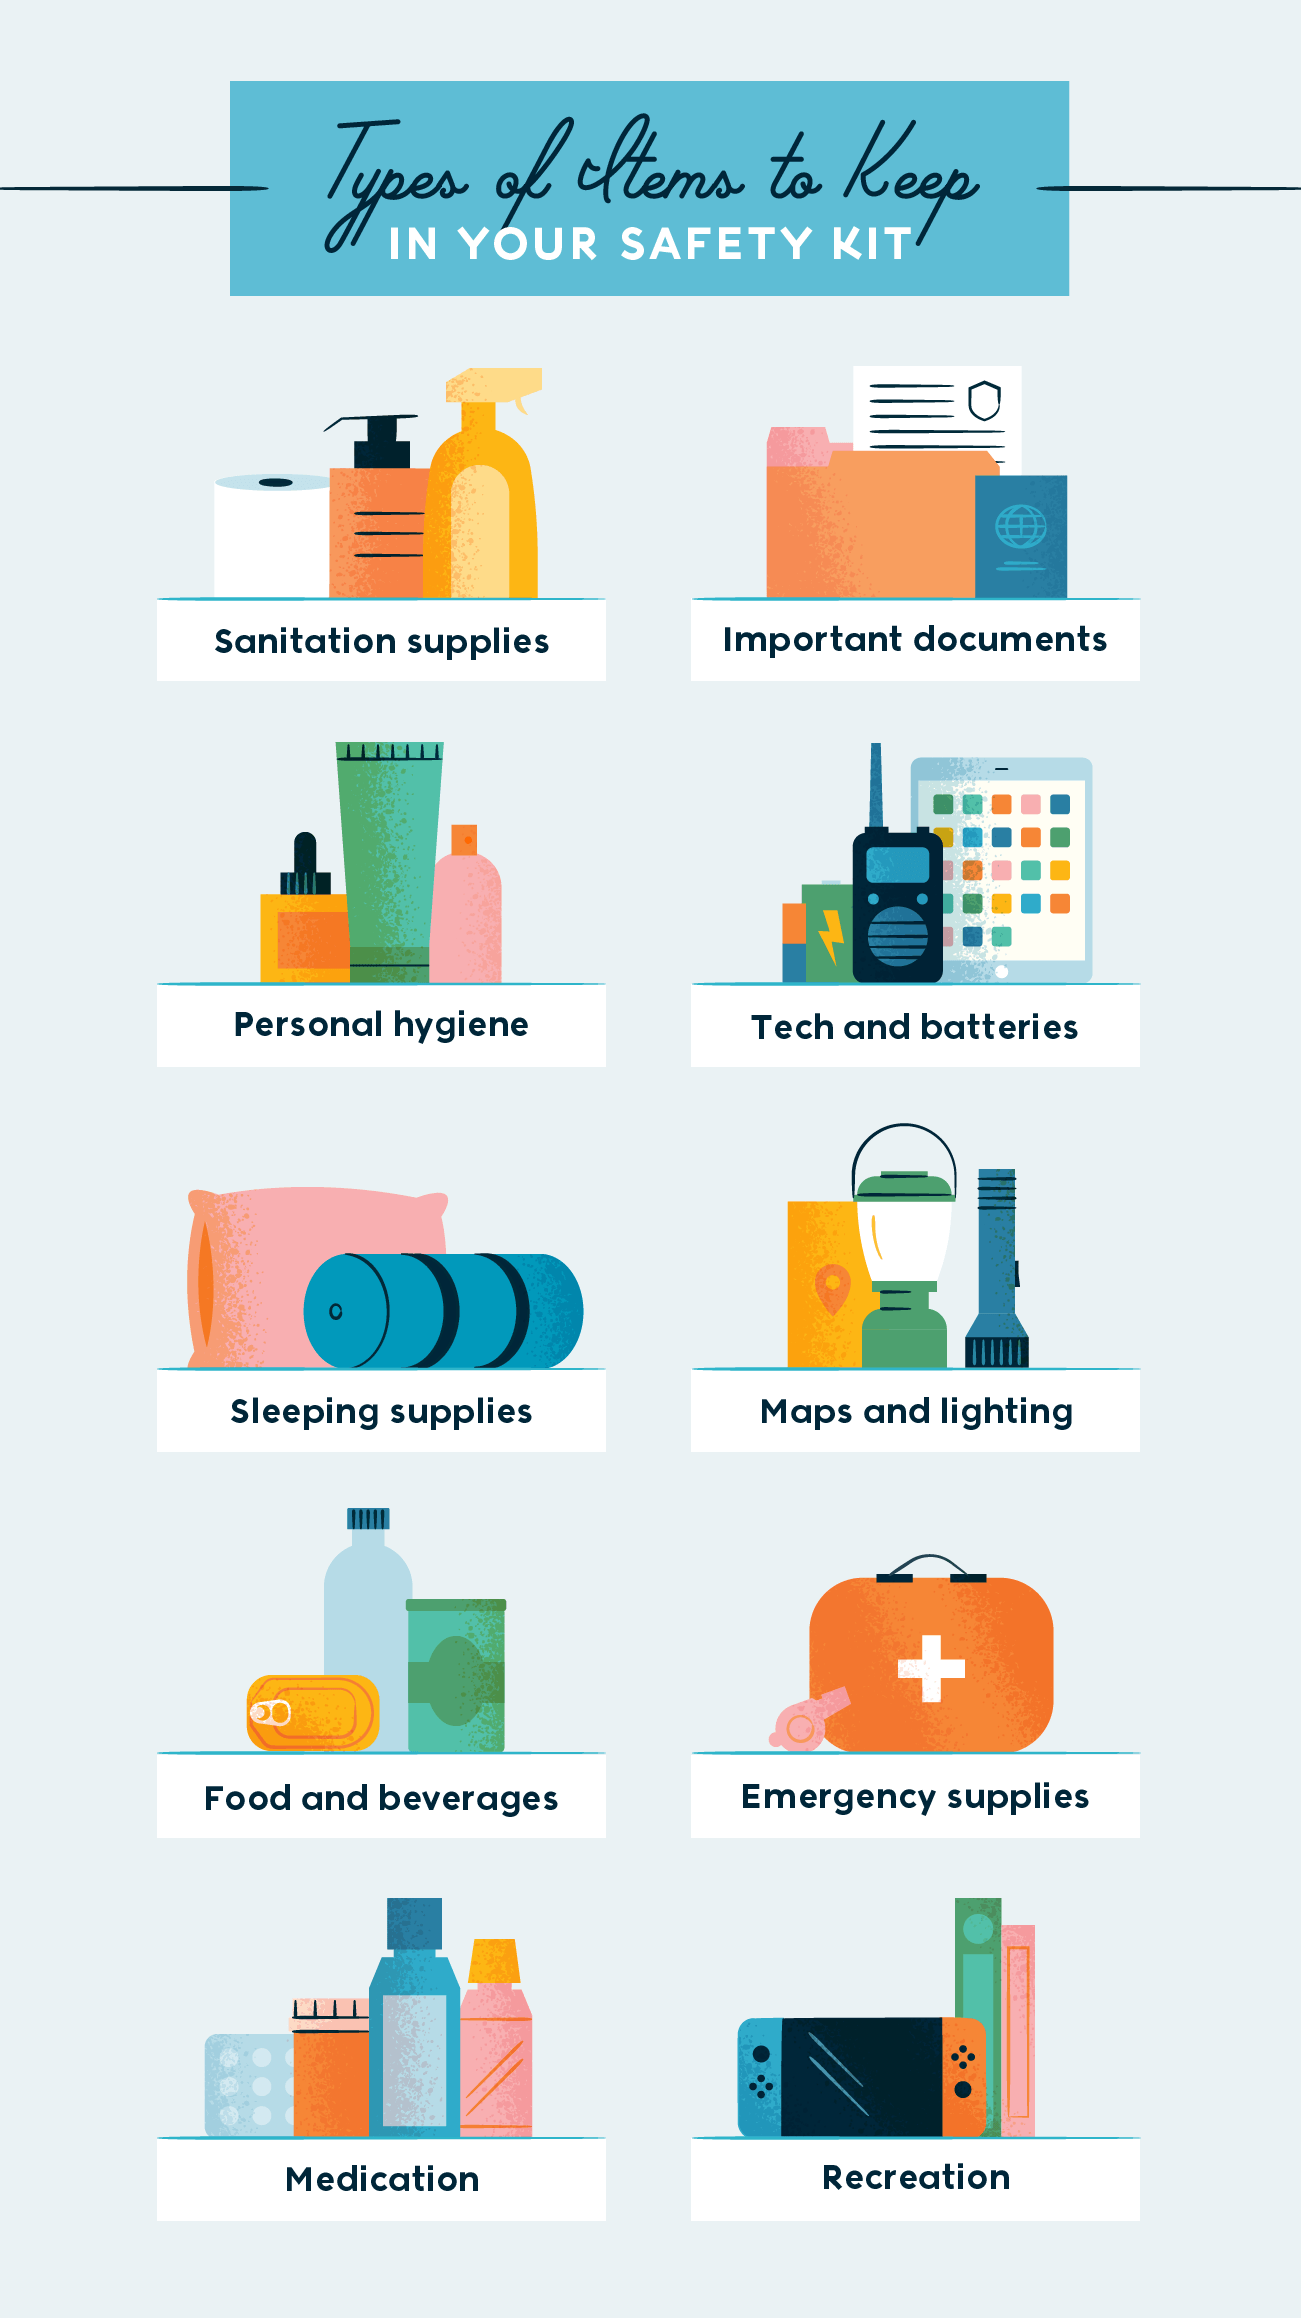 types of items to keep in your safety kit